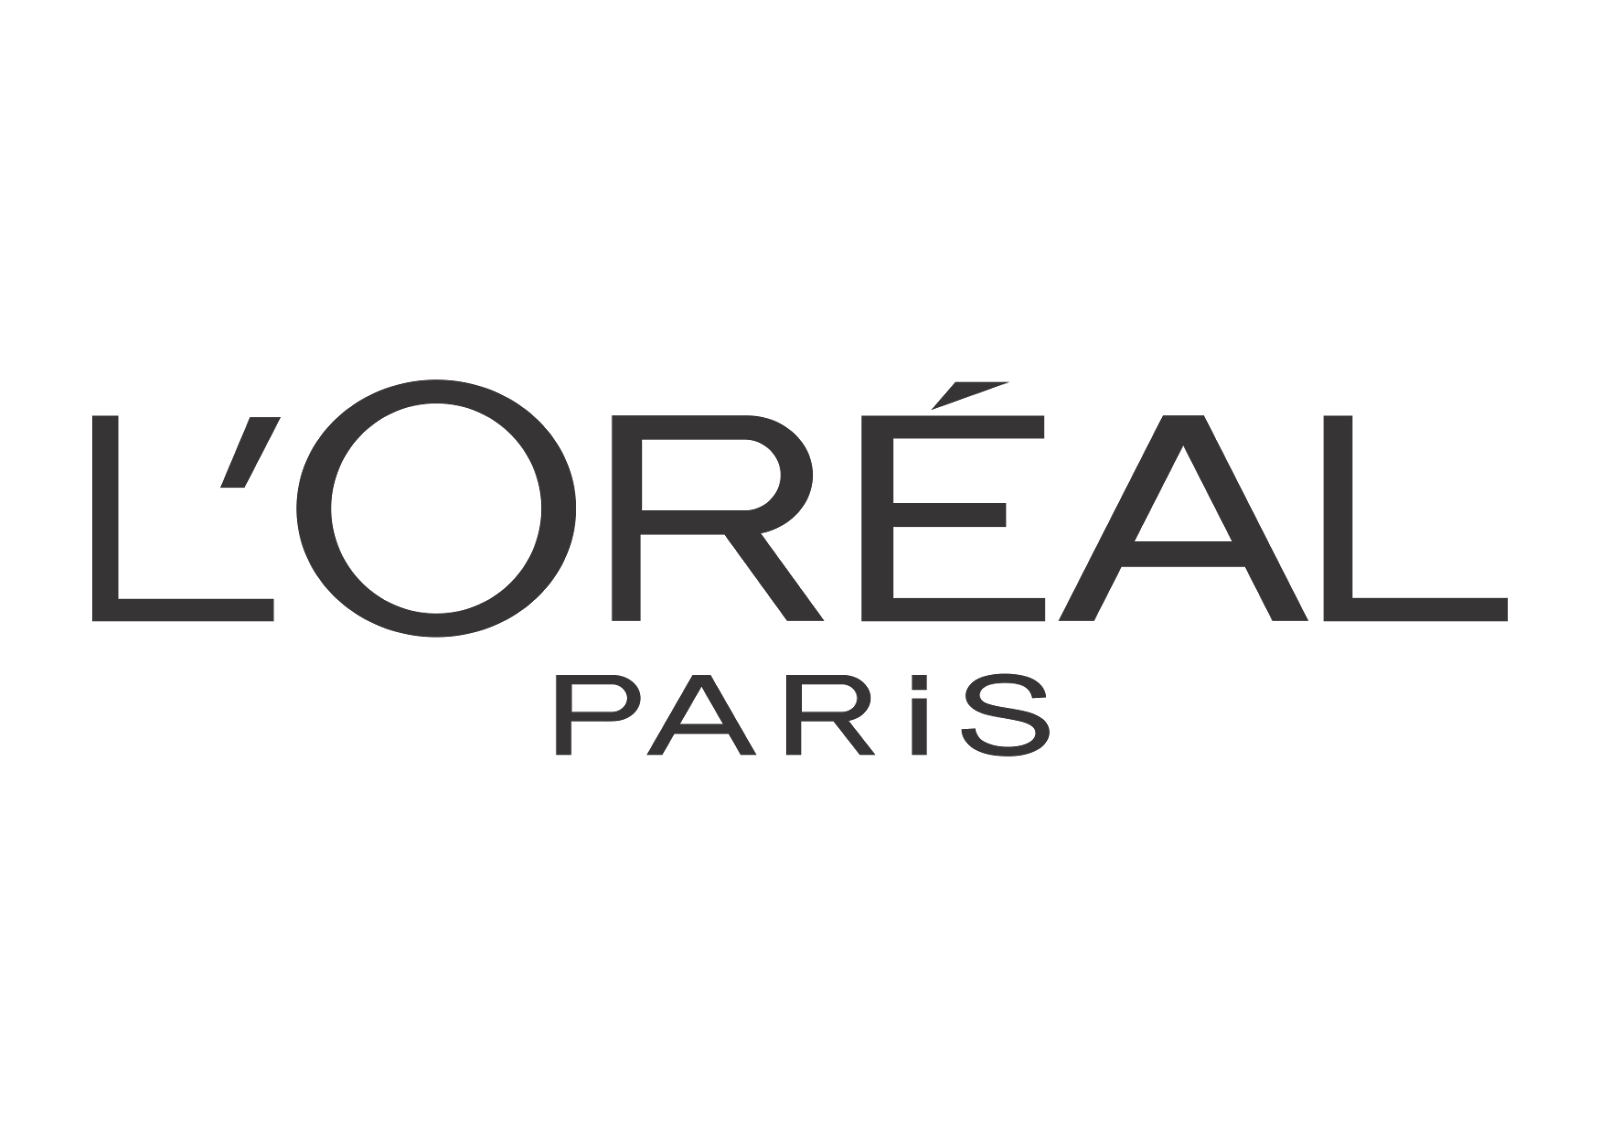 Loreal Logo Wallpaper